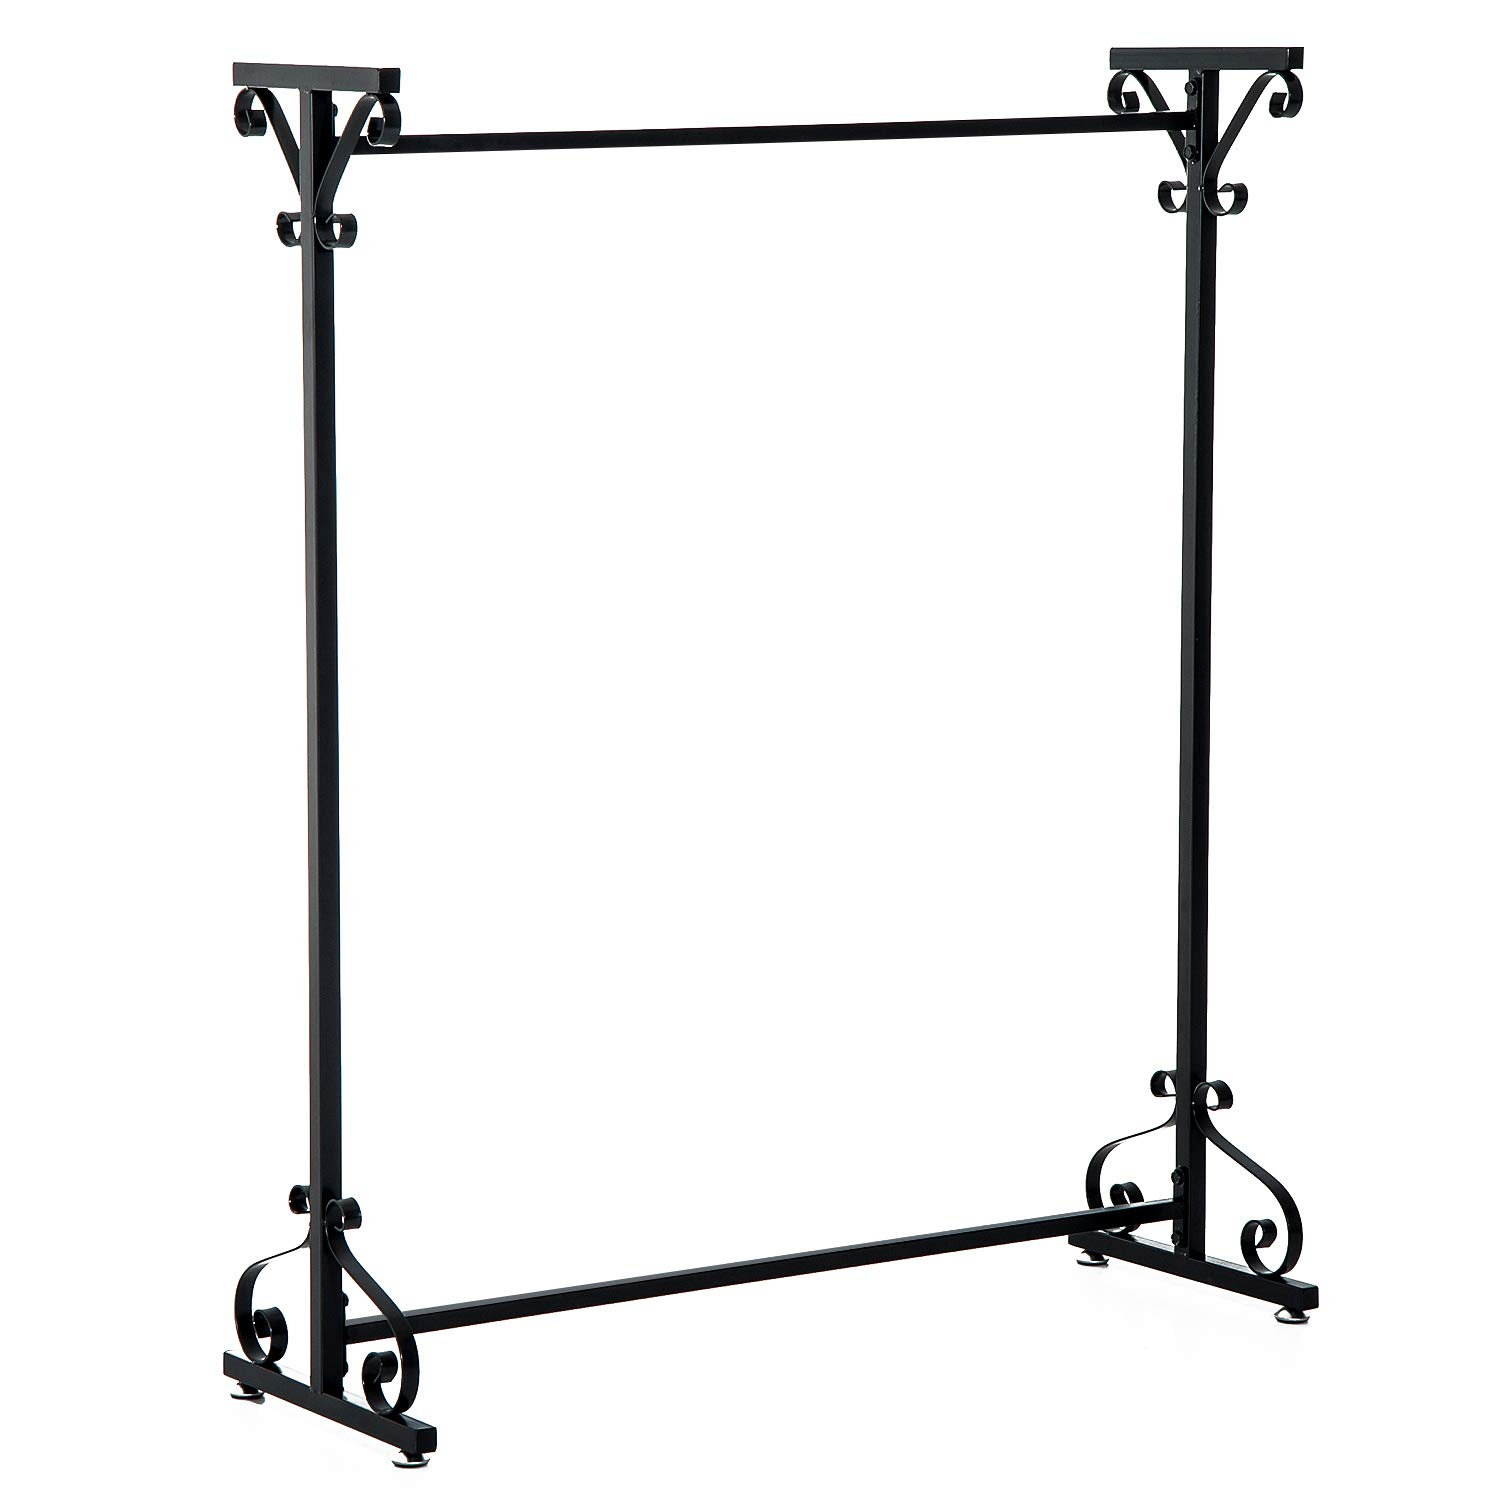 HOMCOM Hanger Metal Stand Rack Clothes Rail Storage Tidy Rail Bedroom Furniture Sold By MHSTAR